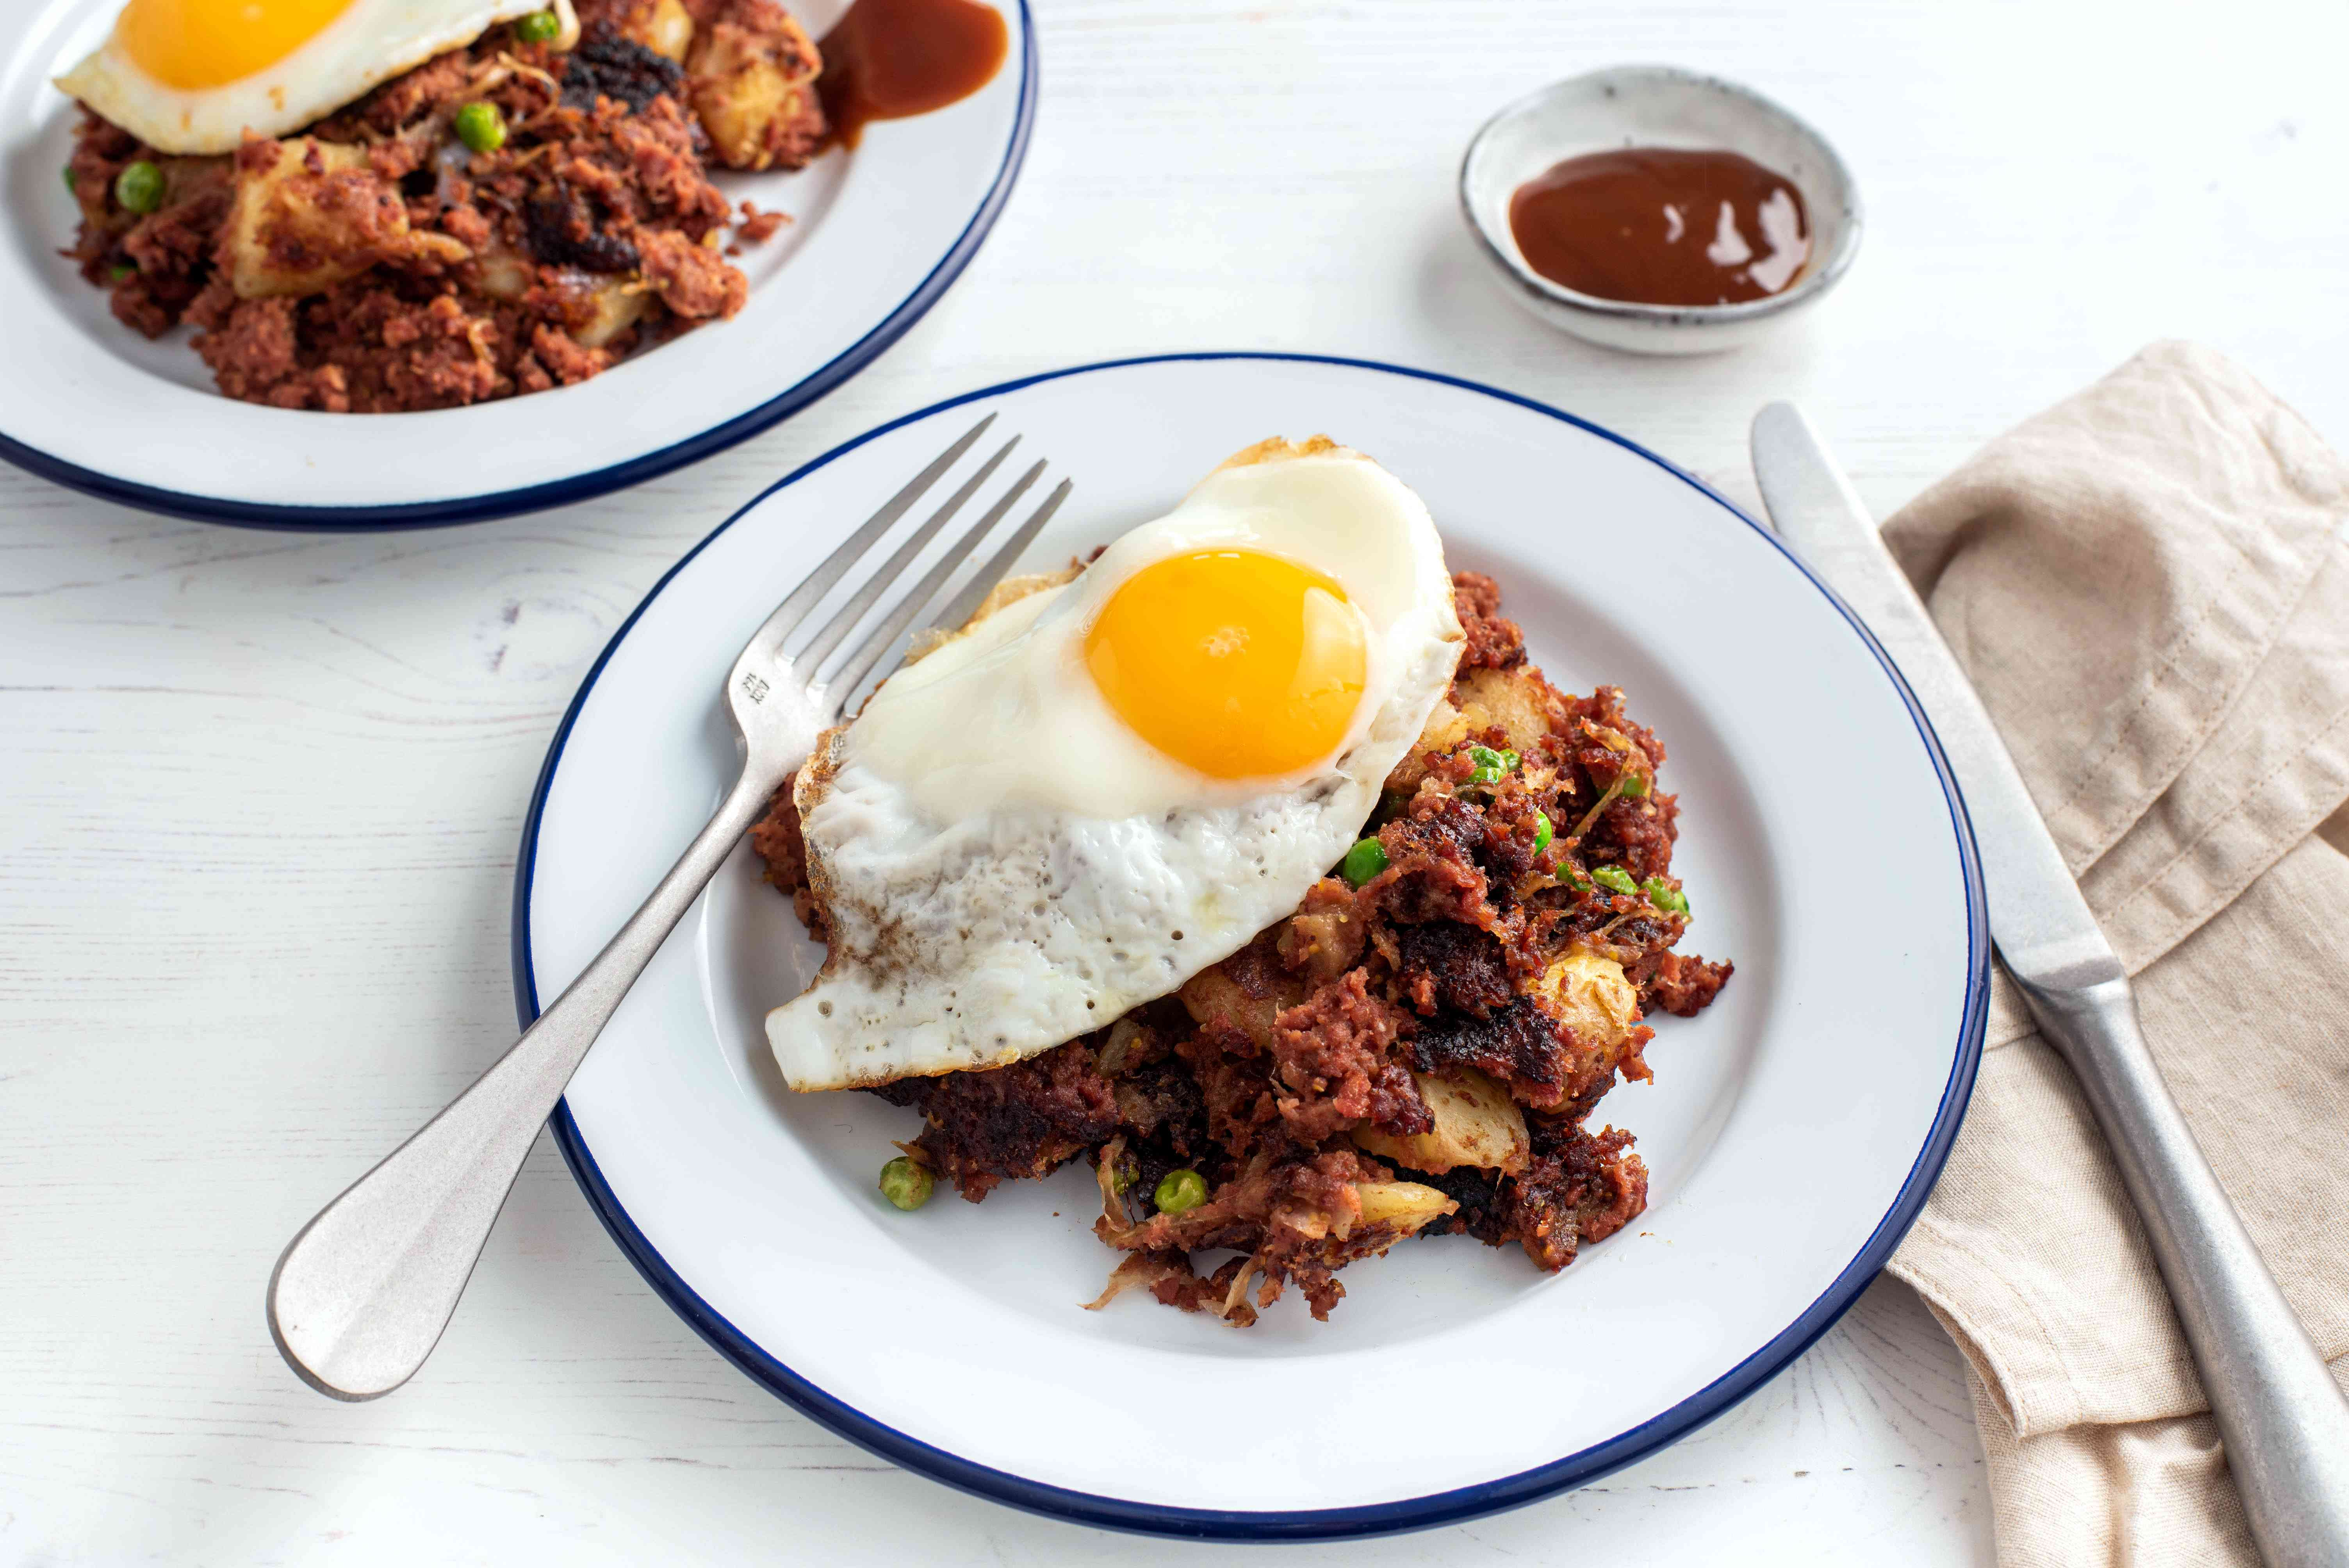 sunny side up egg on top of British Corned Beef Hash on a white plate